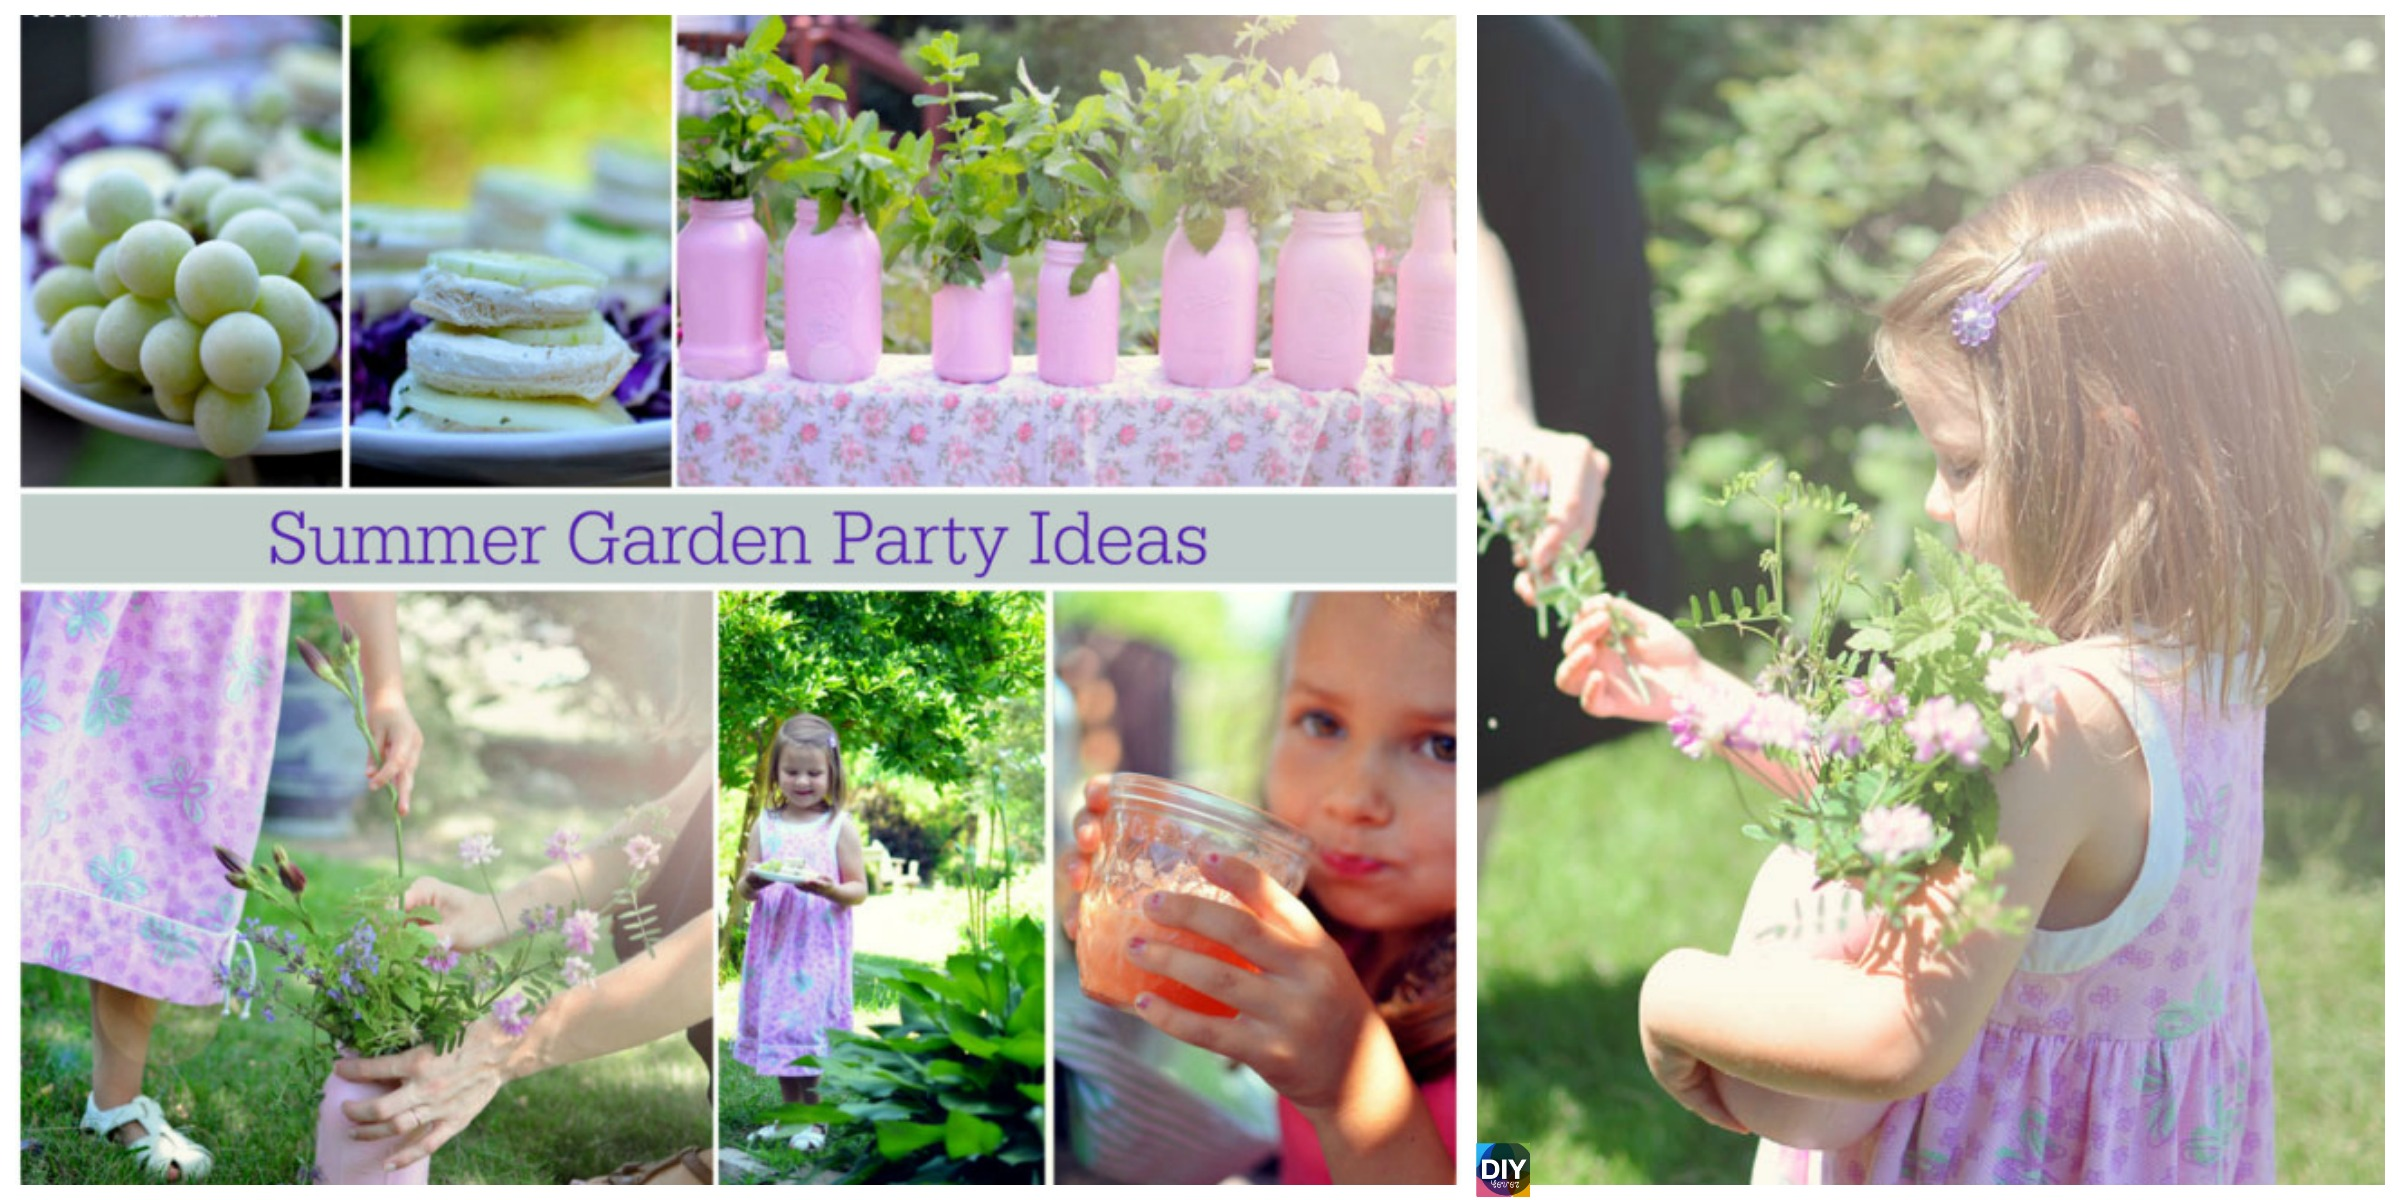 DIY Girls' Summer Garden Party Ideas